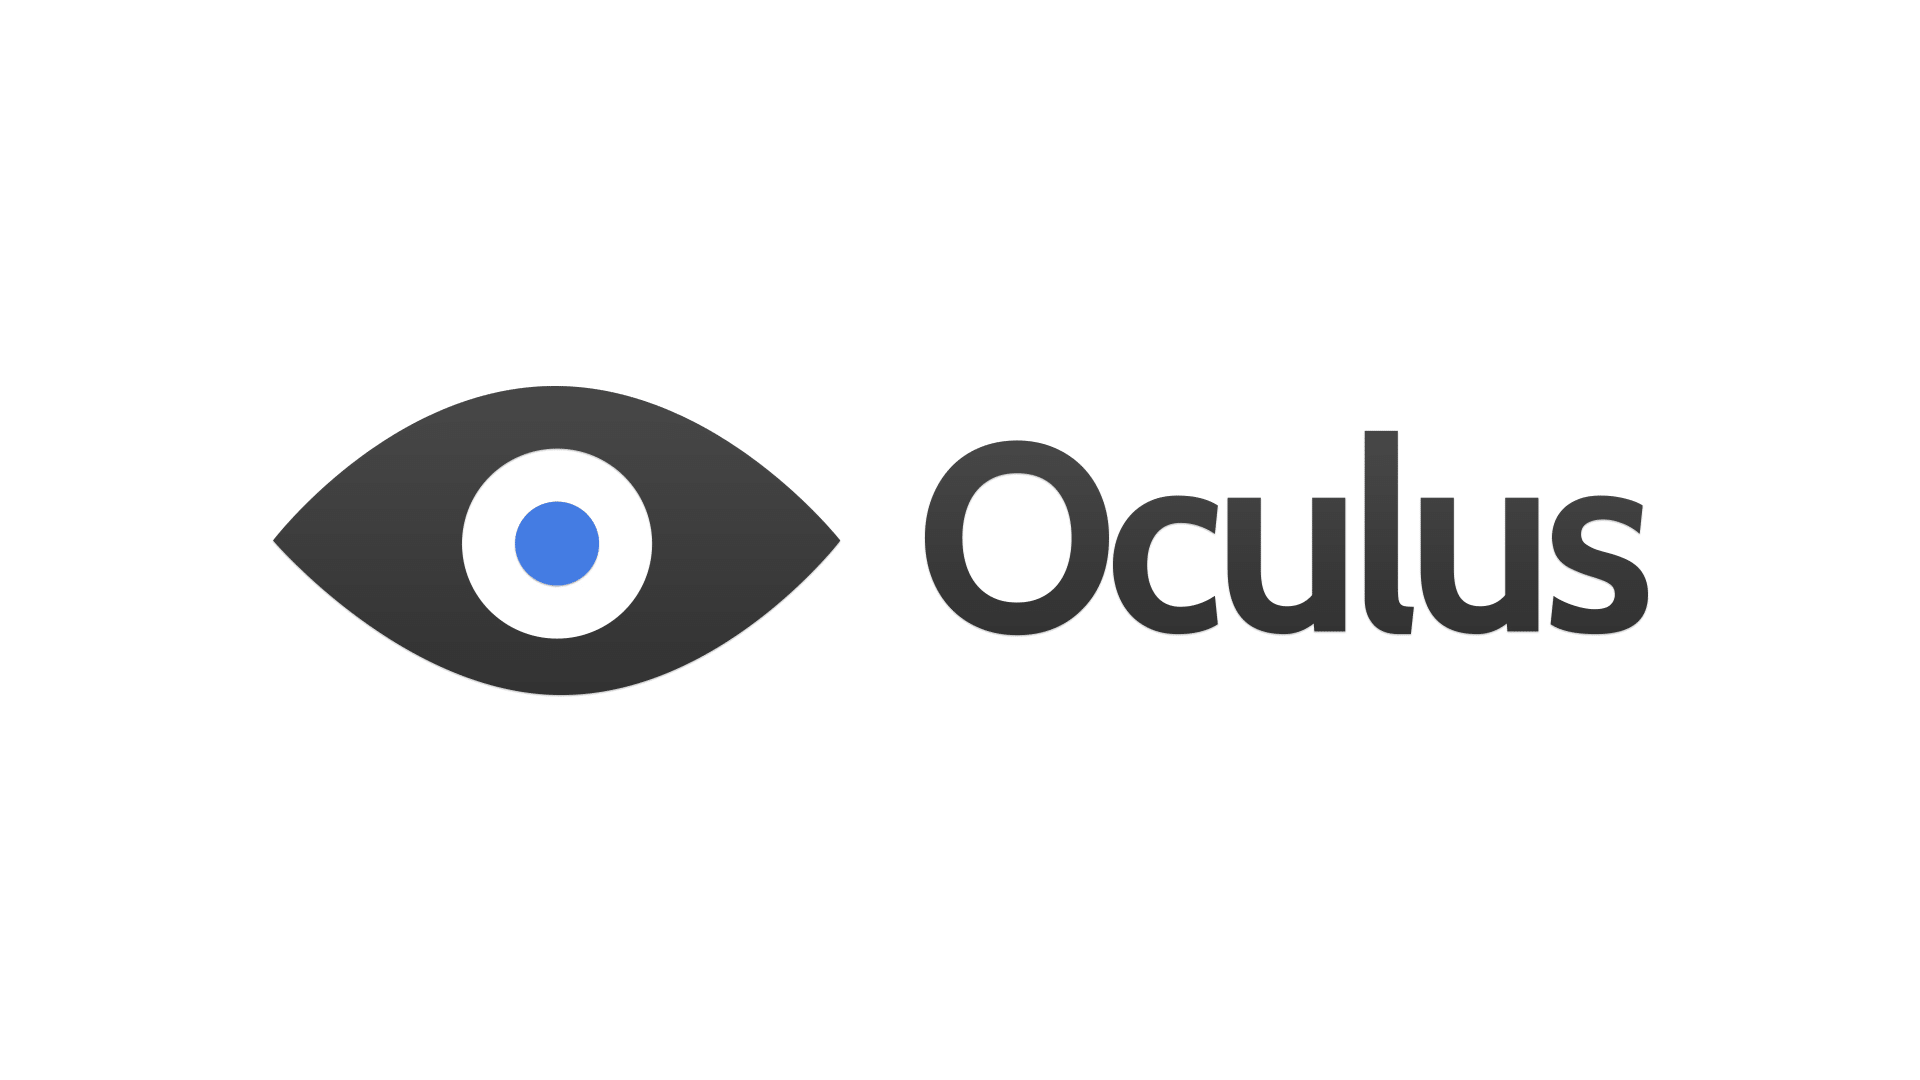 Oculus rift, virtual reality leaders